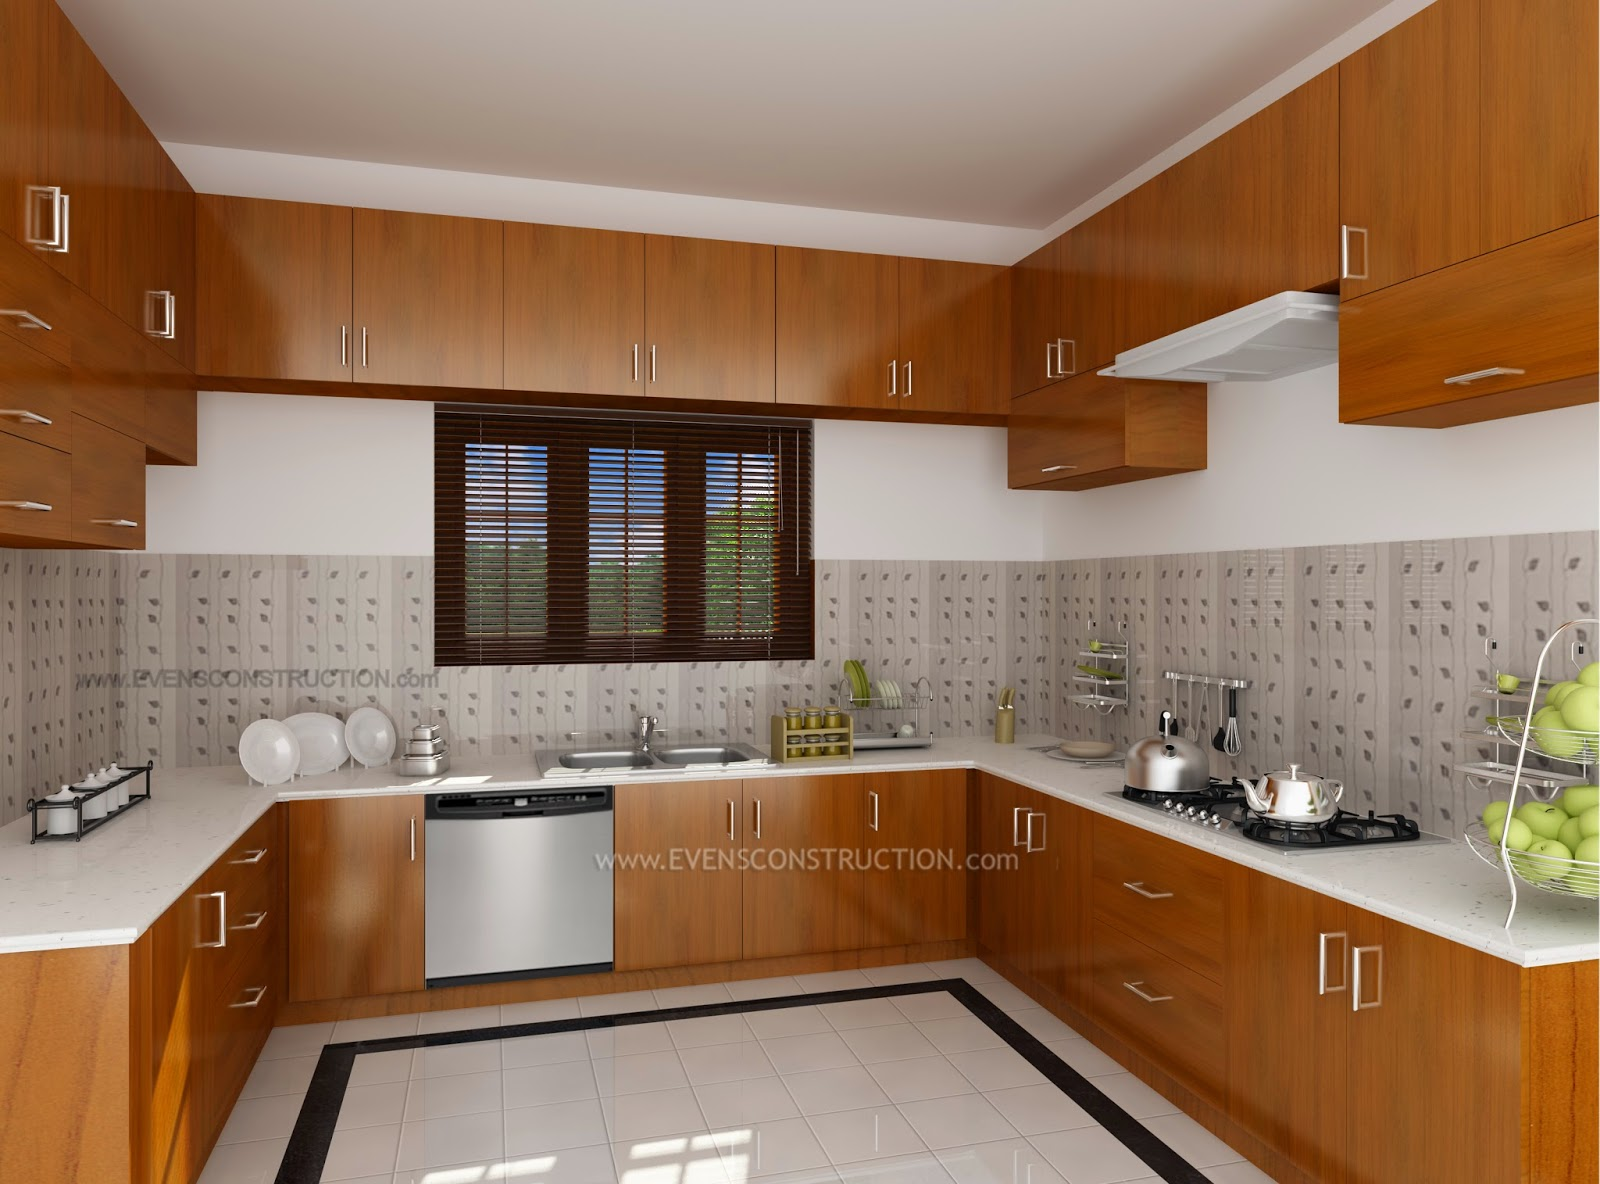 Evens construction pvt ltd october 2014 - Modern house interior design kitchen ...